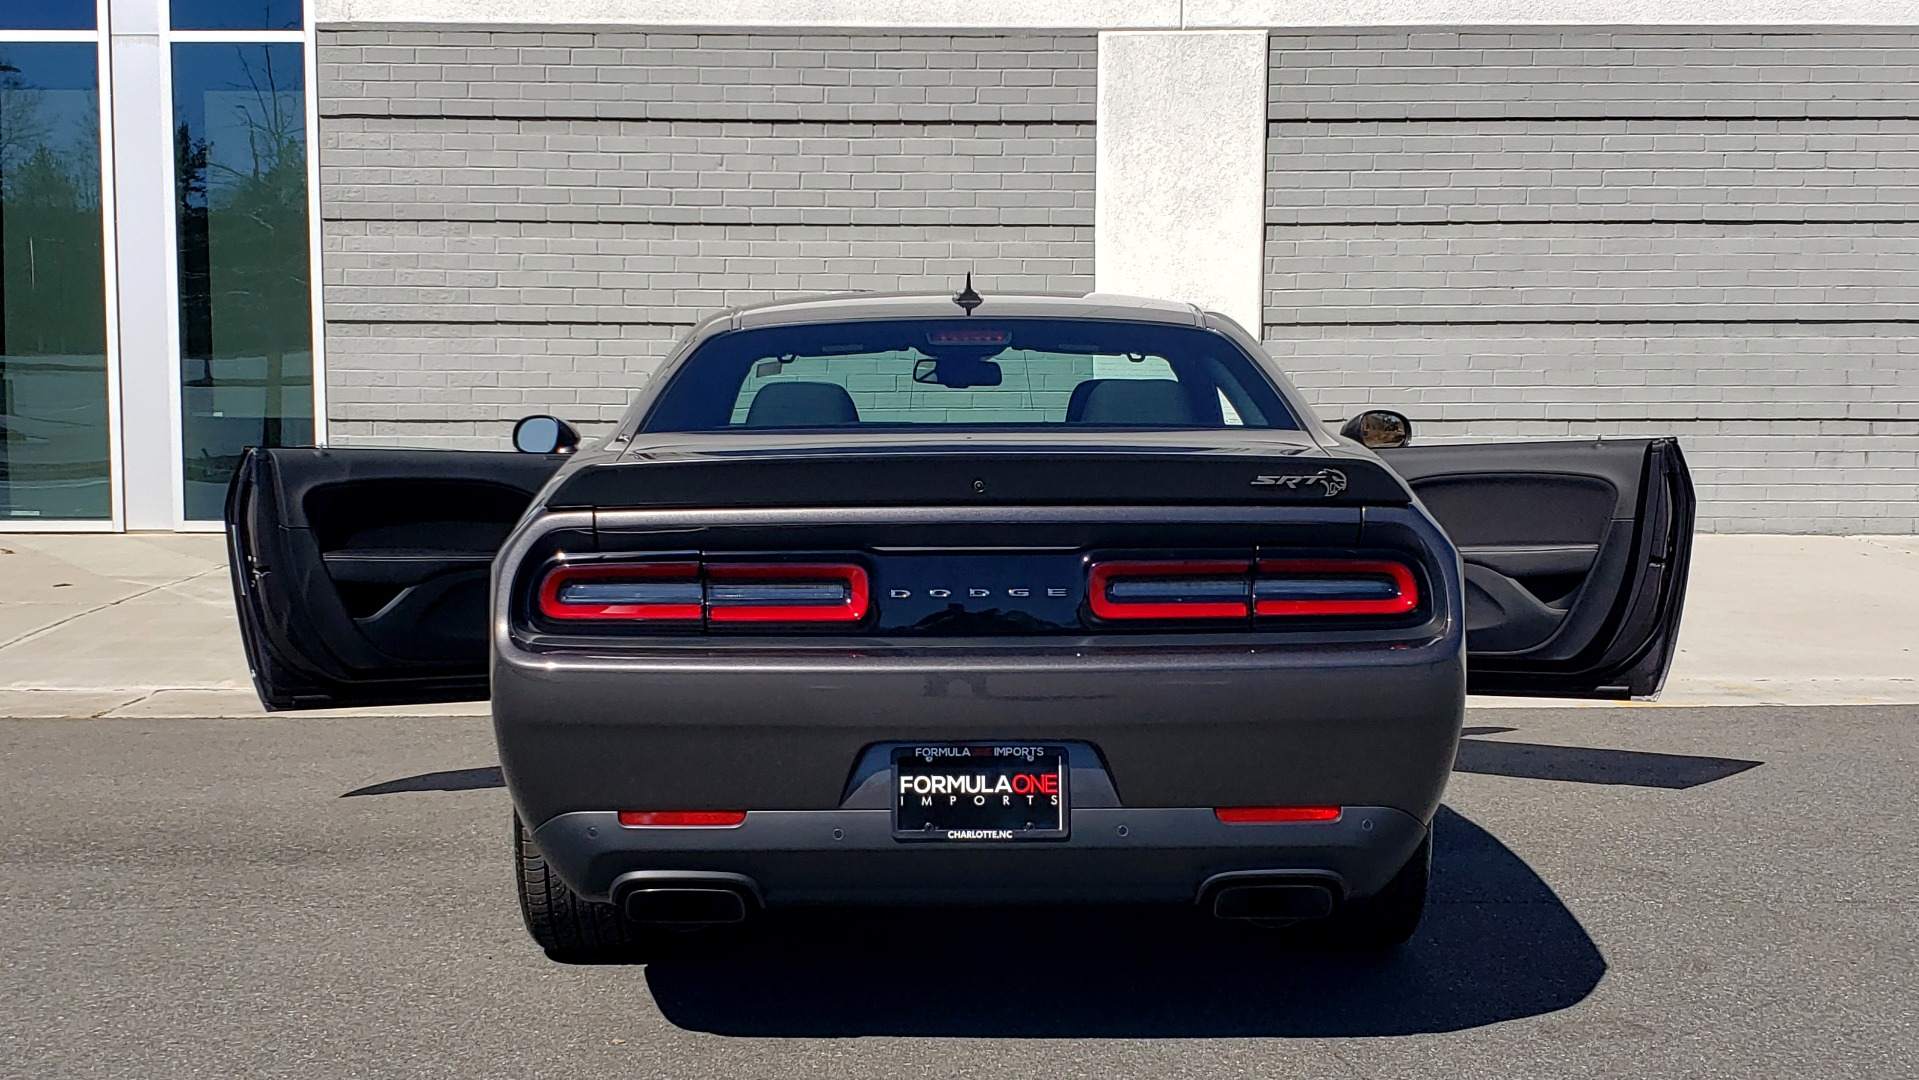 Used 2020 Dodge CHALLENGER SRT HELLCAT (717HP) / NAV / AUTO / CLOTH / REARVIEW / LOW MILES for sale Sold at Formula Imports in Charlotte NC 28227 31